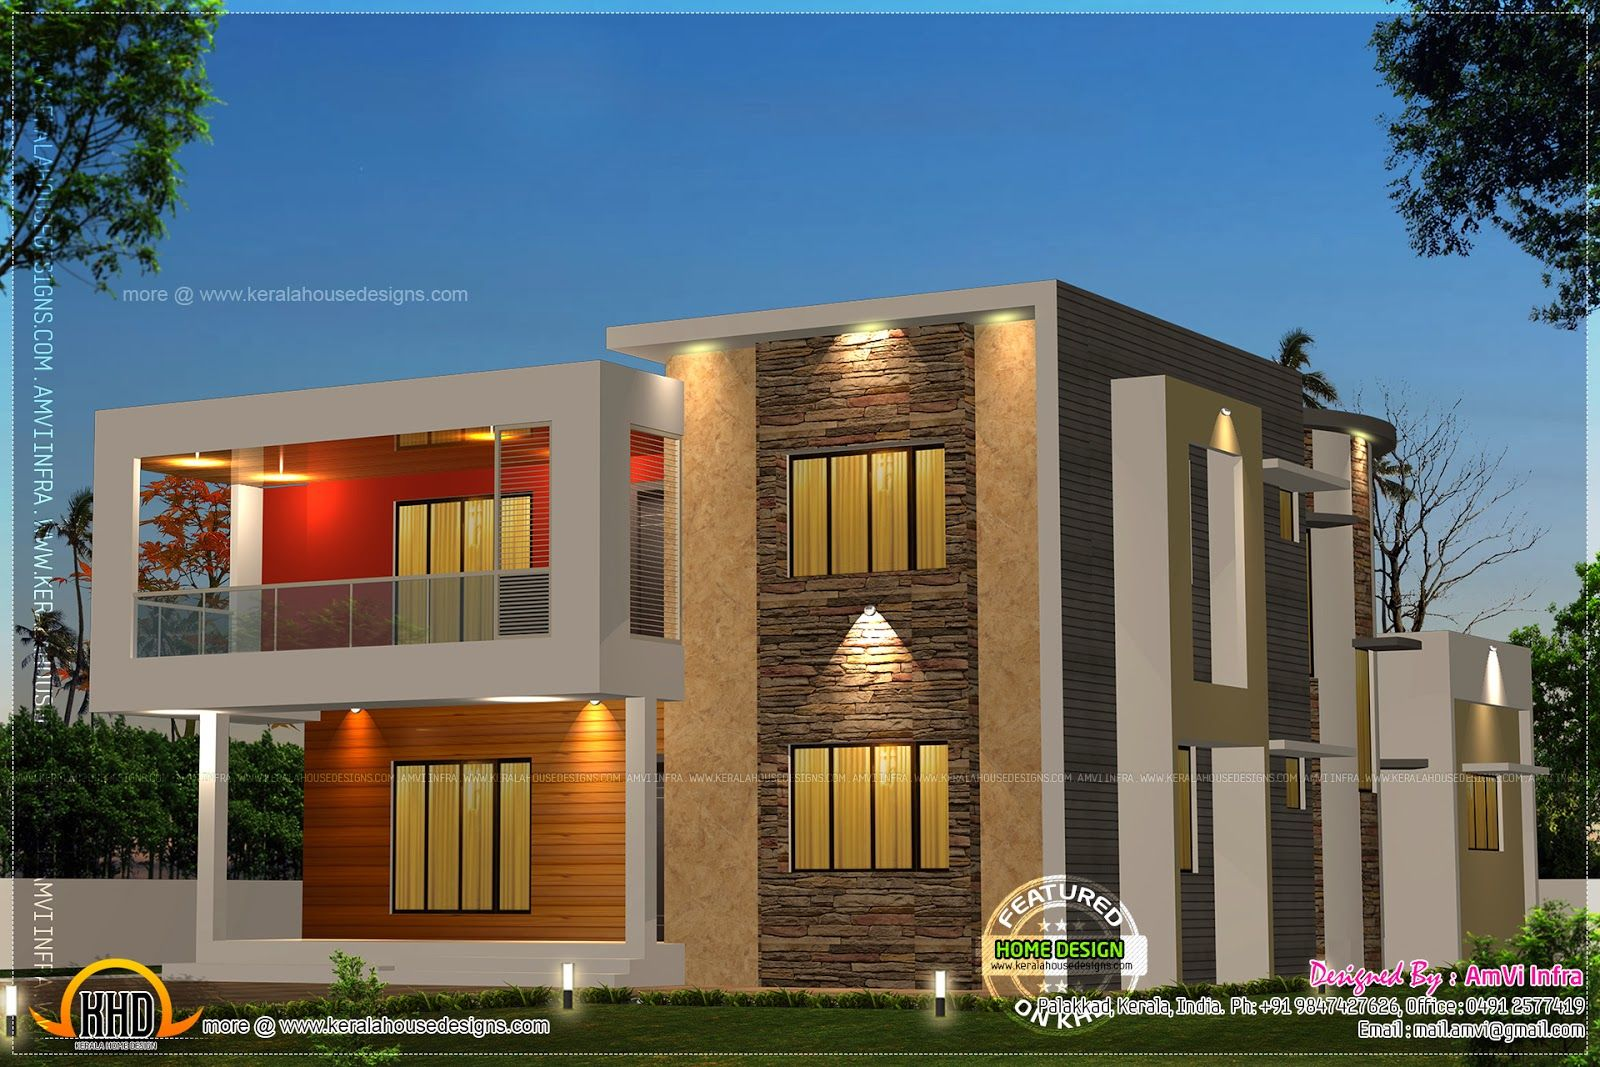 5 Bedroom Contemporary House With Plan   Kerala Home Design And Floor Plans